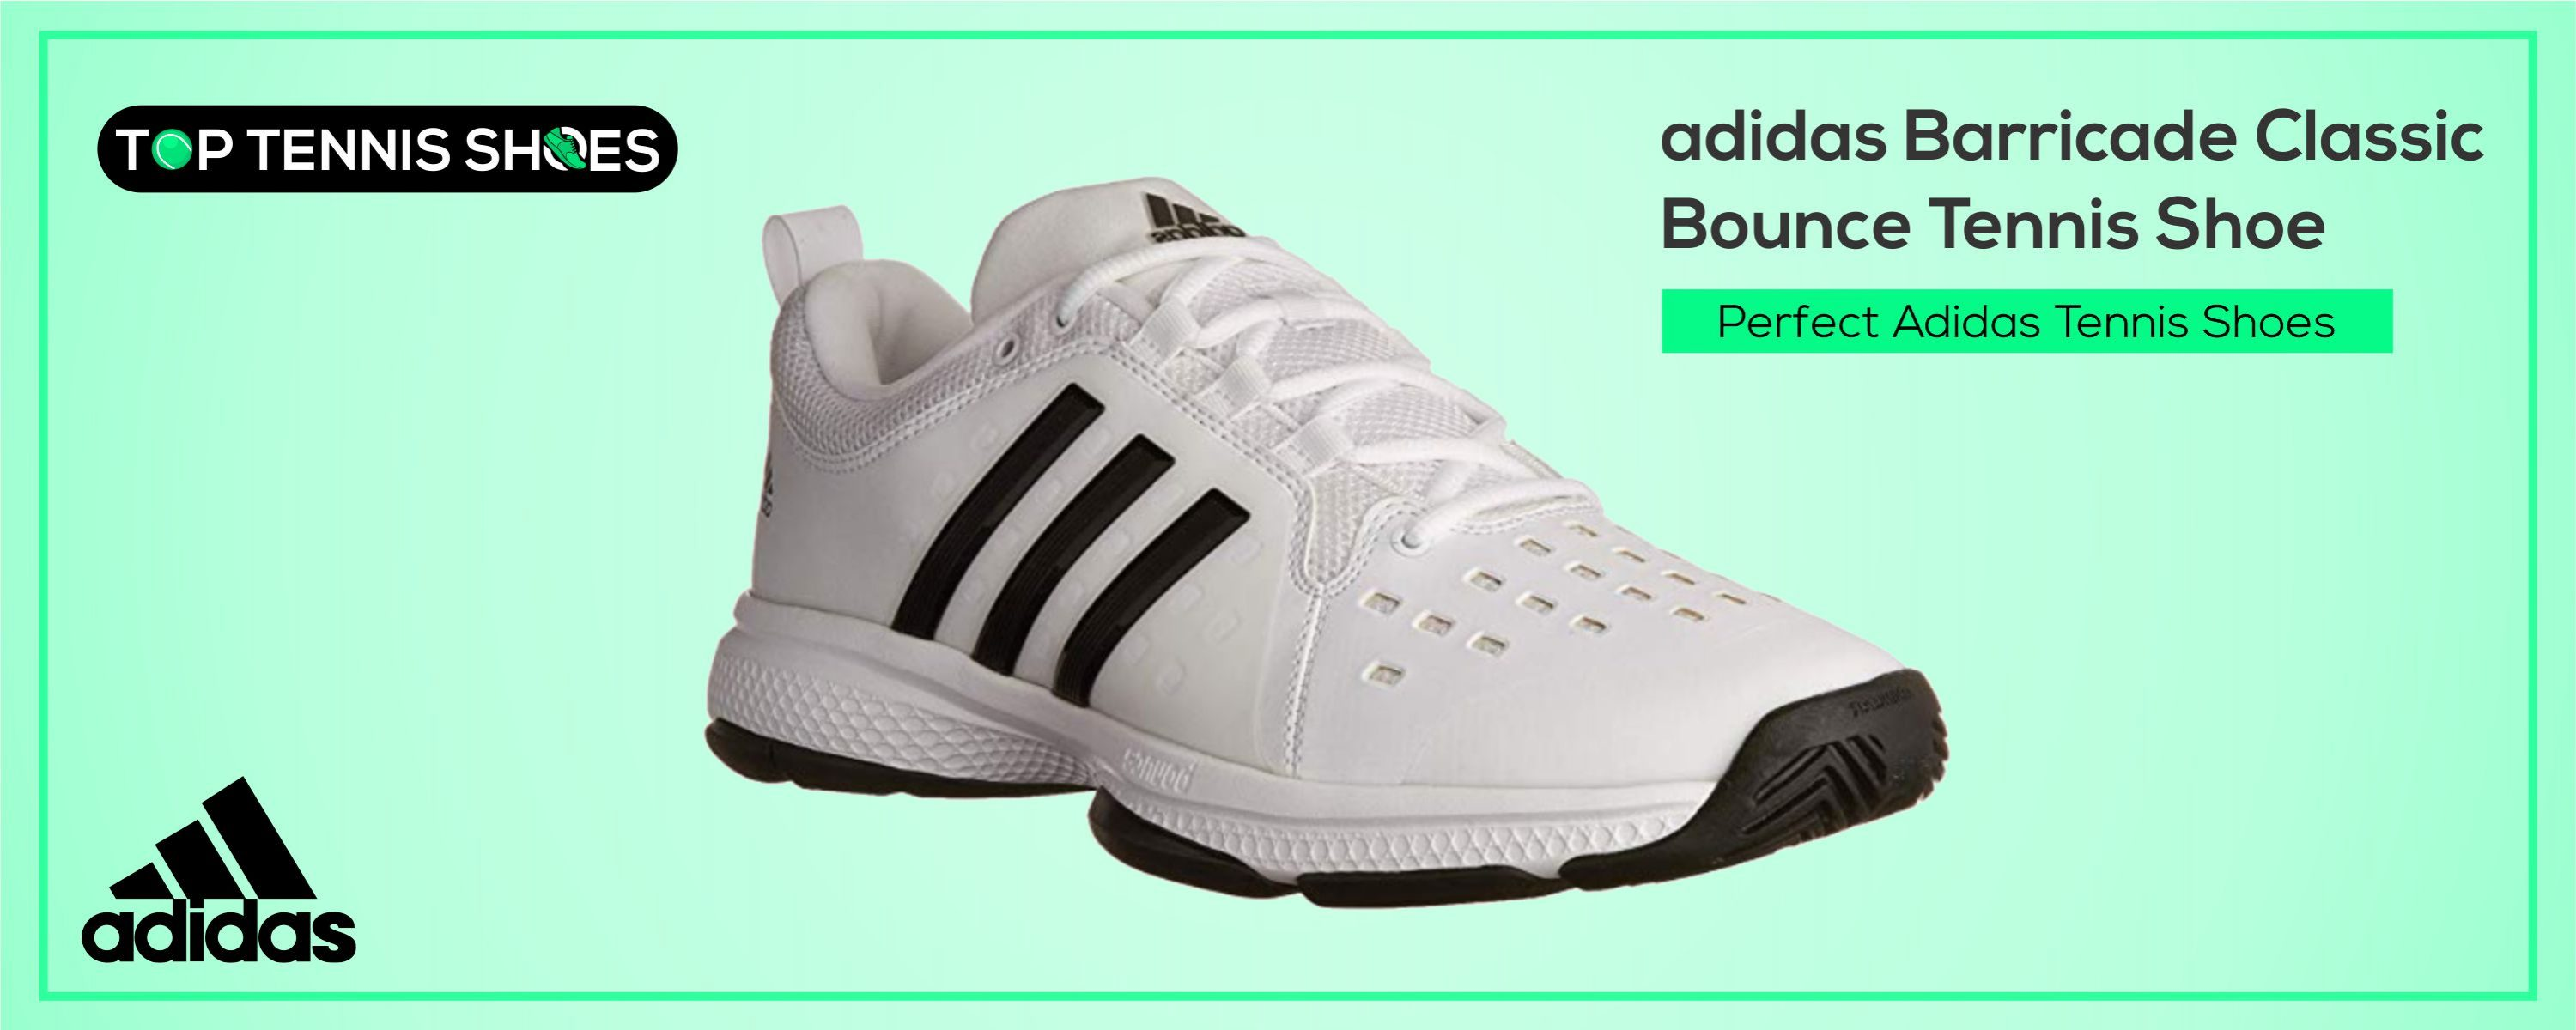 Perfect Adidas Tennis Shoes